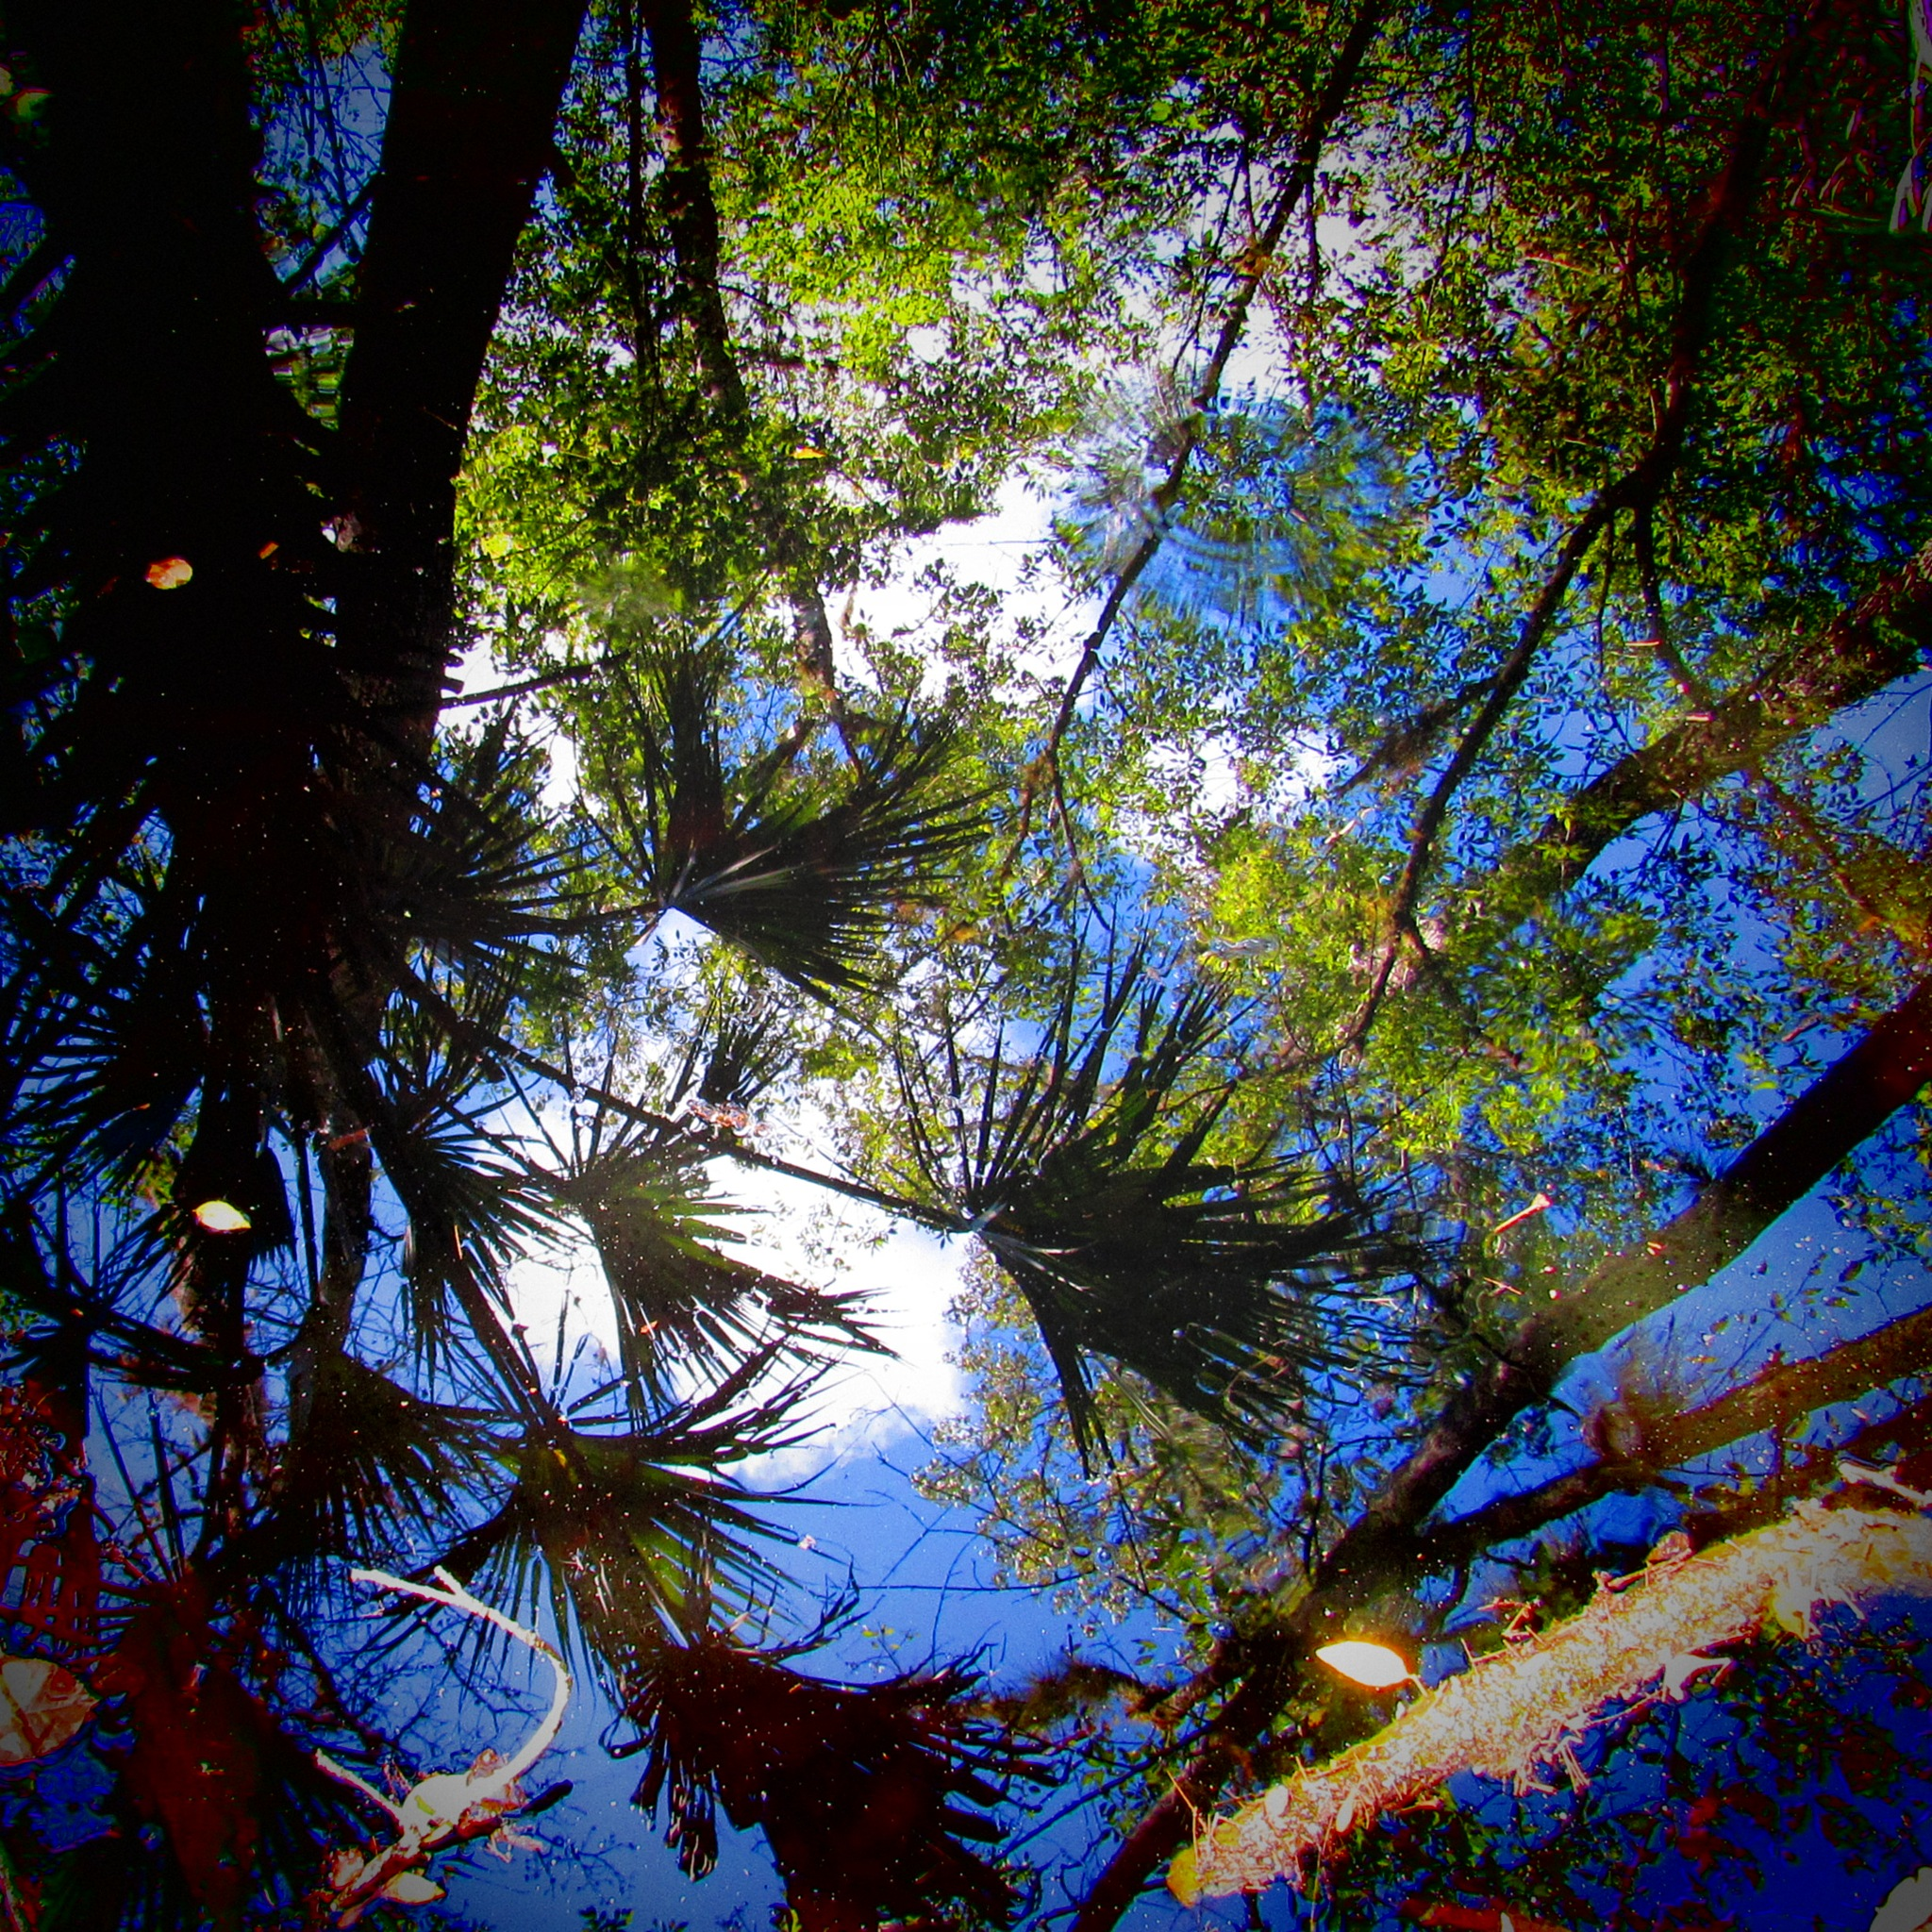 Reflections of the Swamp by Todd